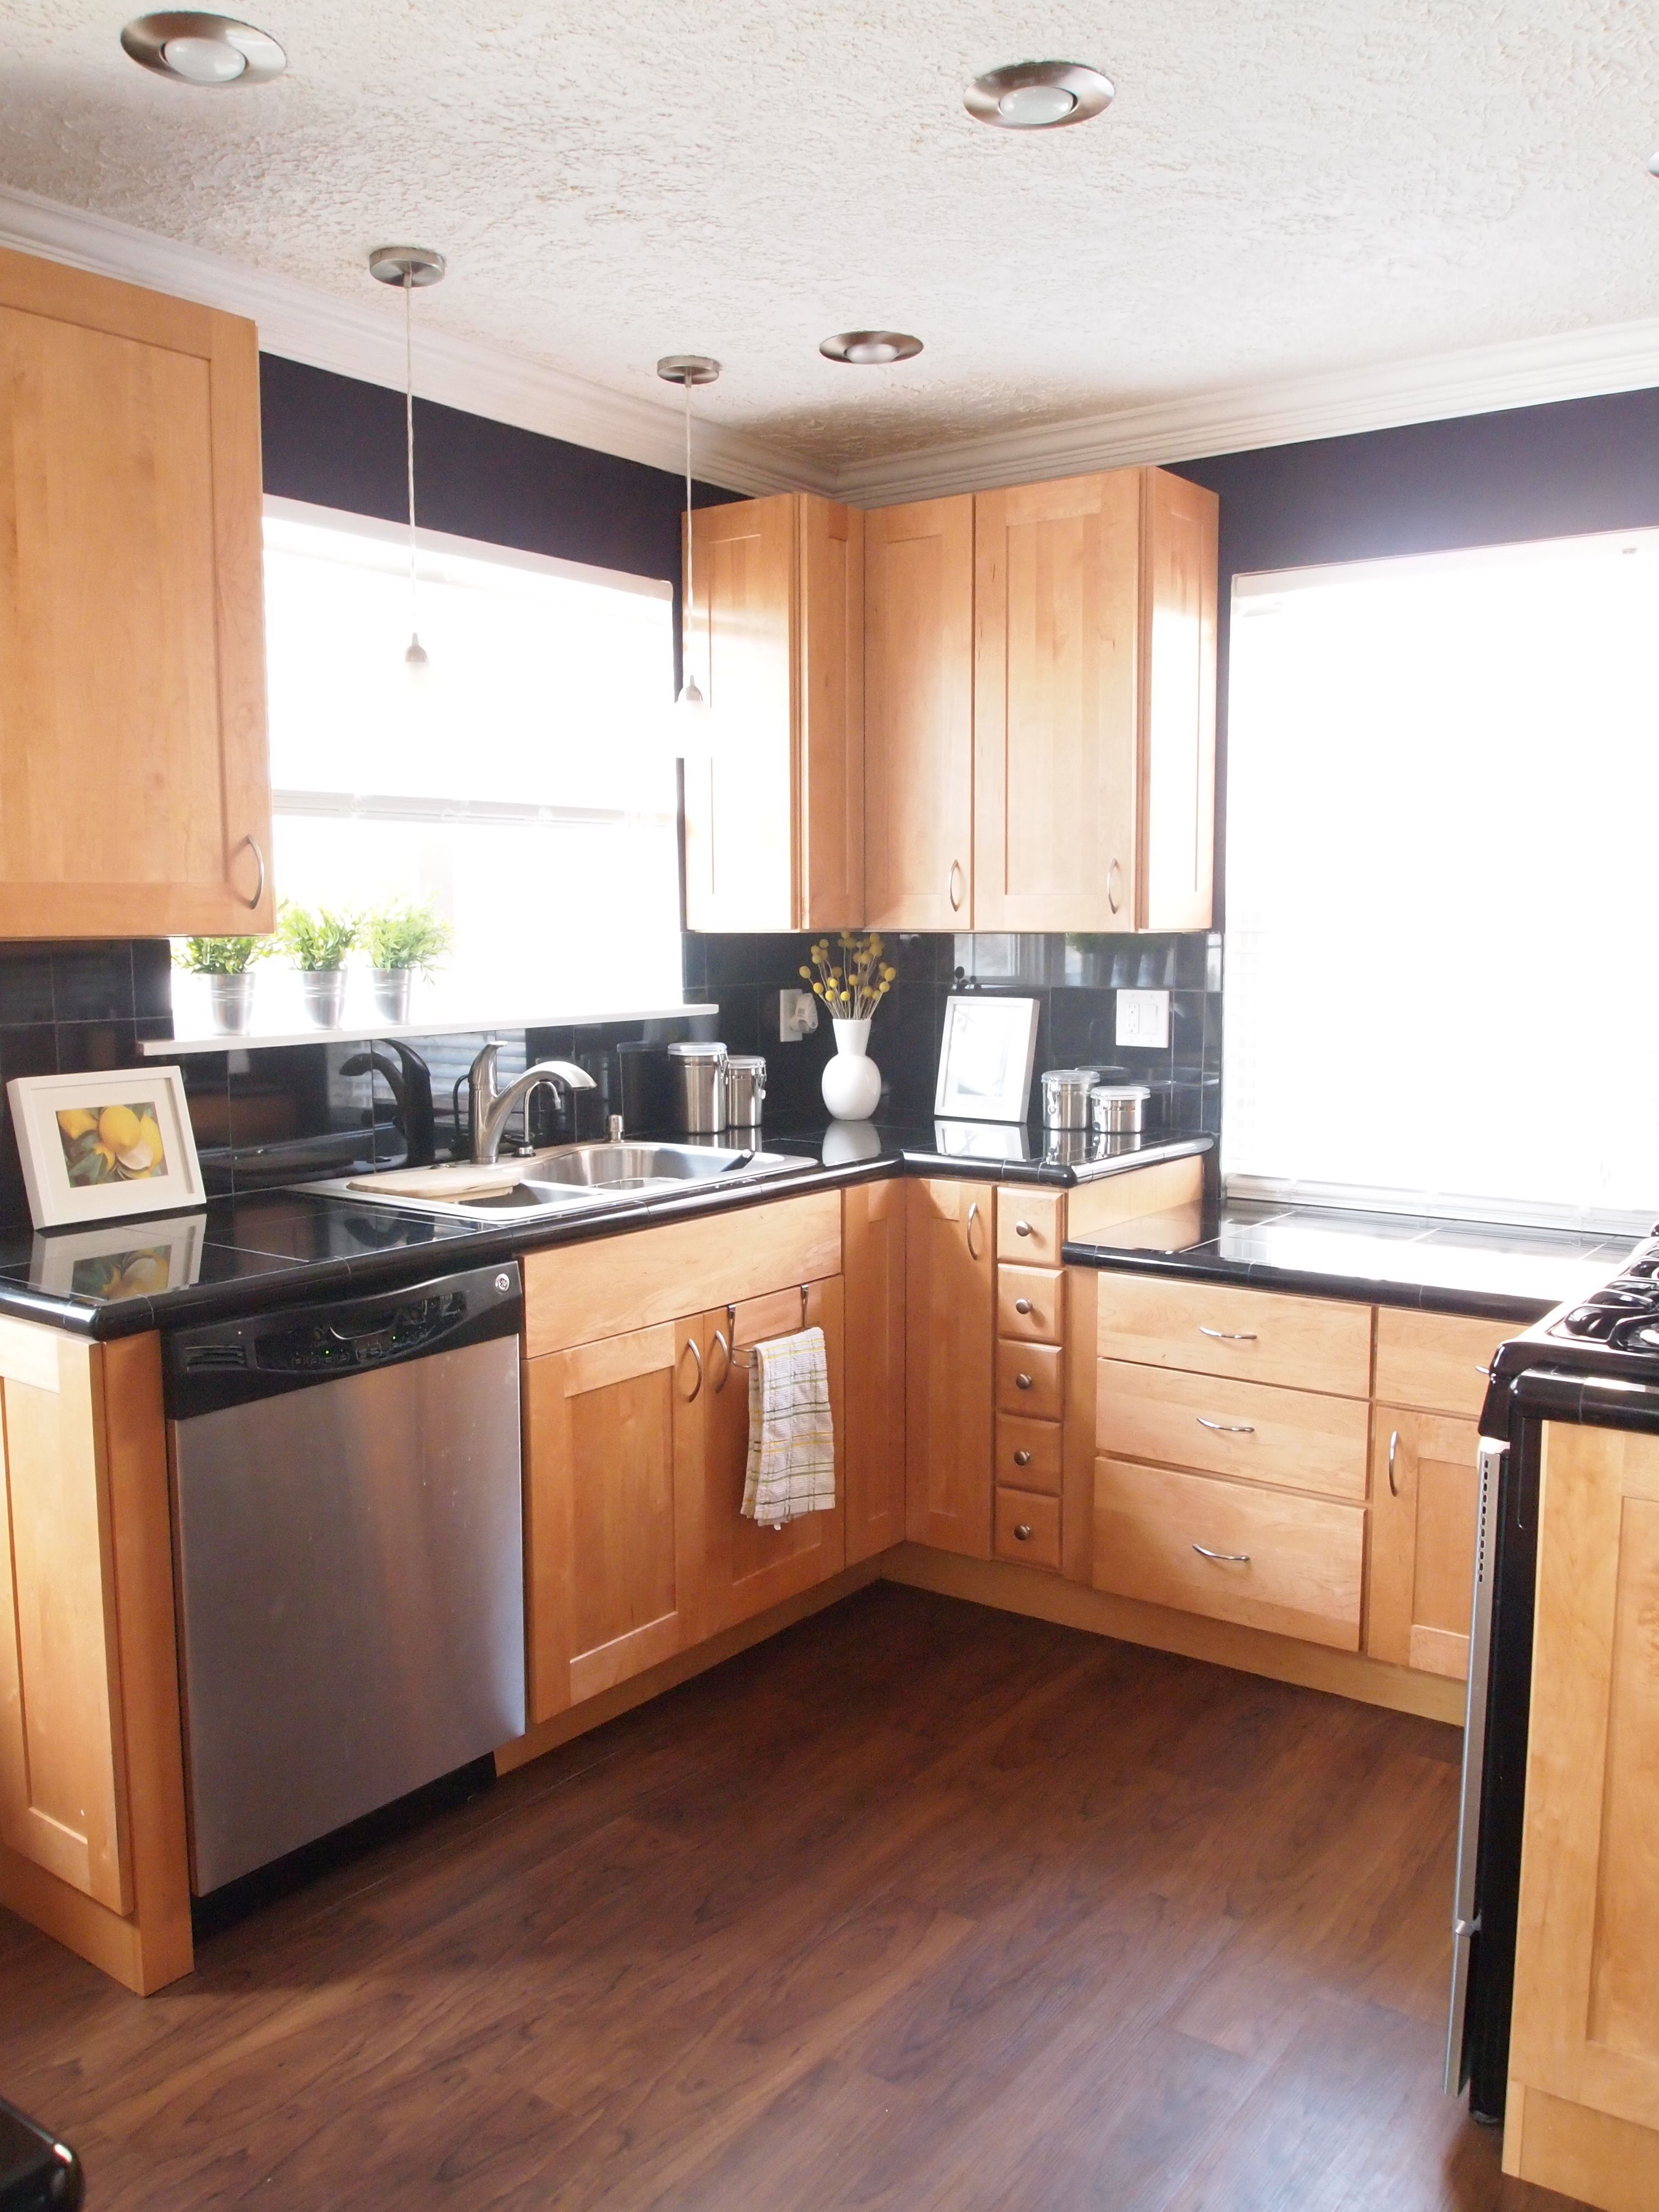 Our Client Wanted To Revamp Their 1980 S Kitchen We Totally Re Designed The Layout And A Affordable Kitchen Remodeling Kitchen Cabinet Remodel Kitchen Remodel